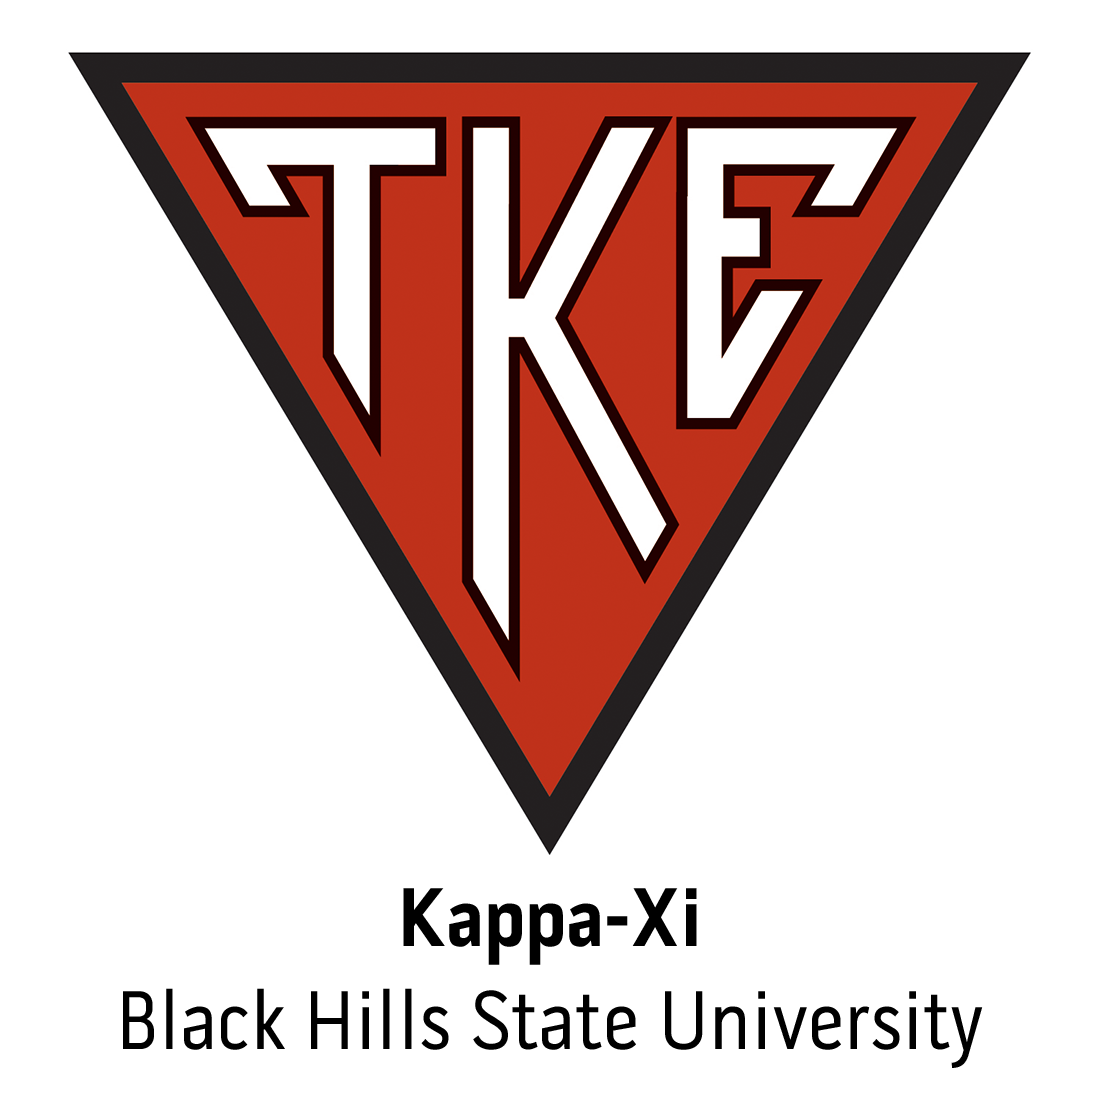 Kappa-Xi Chapter at Black Hills State University